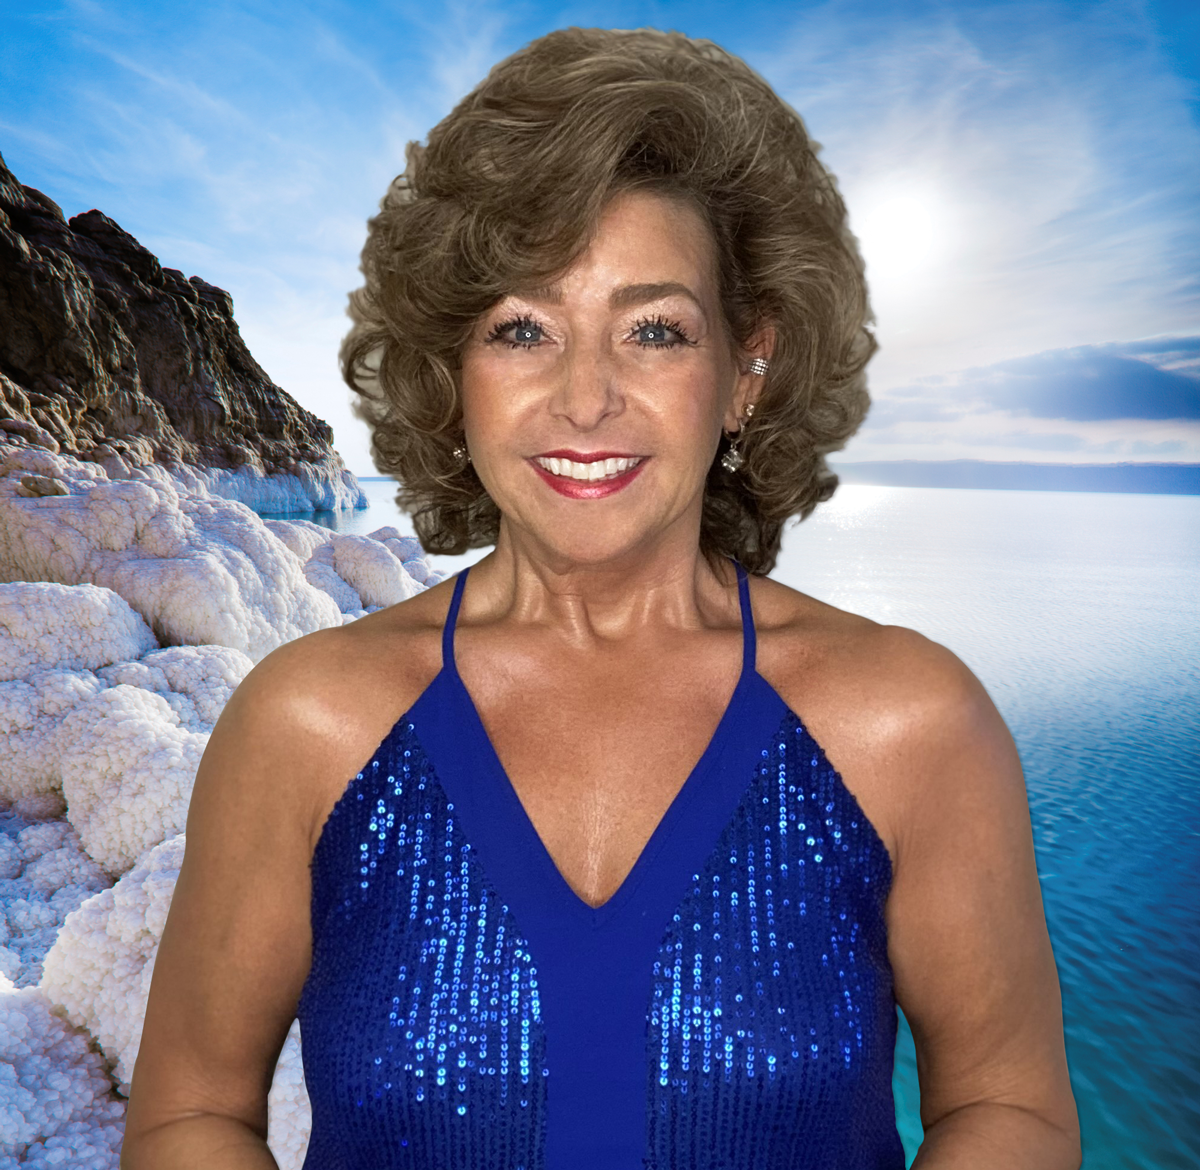 Healing Powers of The Dead Sea Helping Women Around the USA